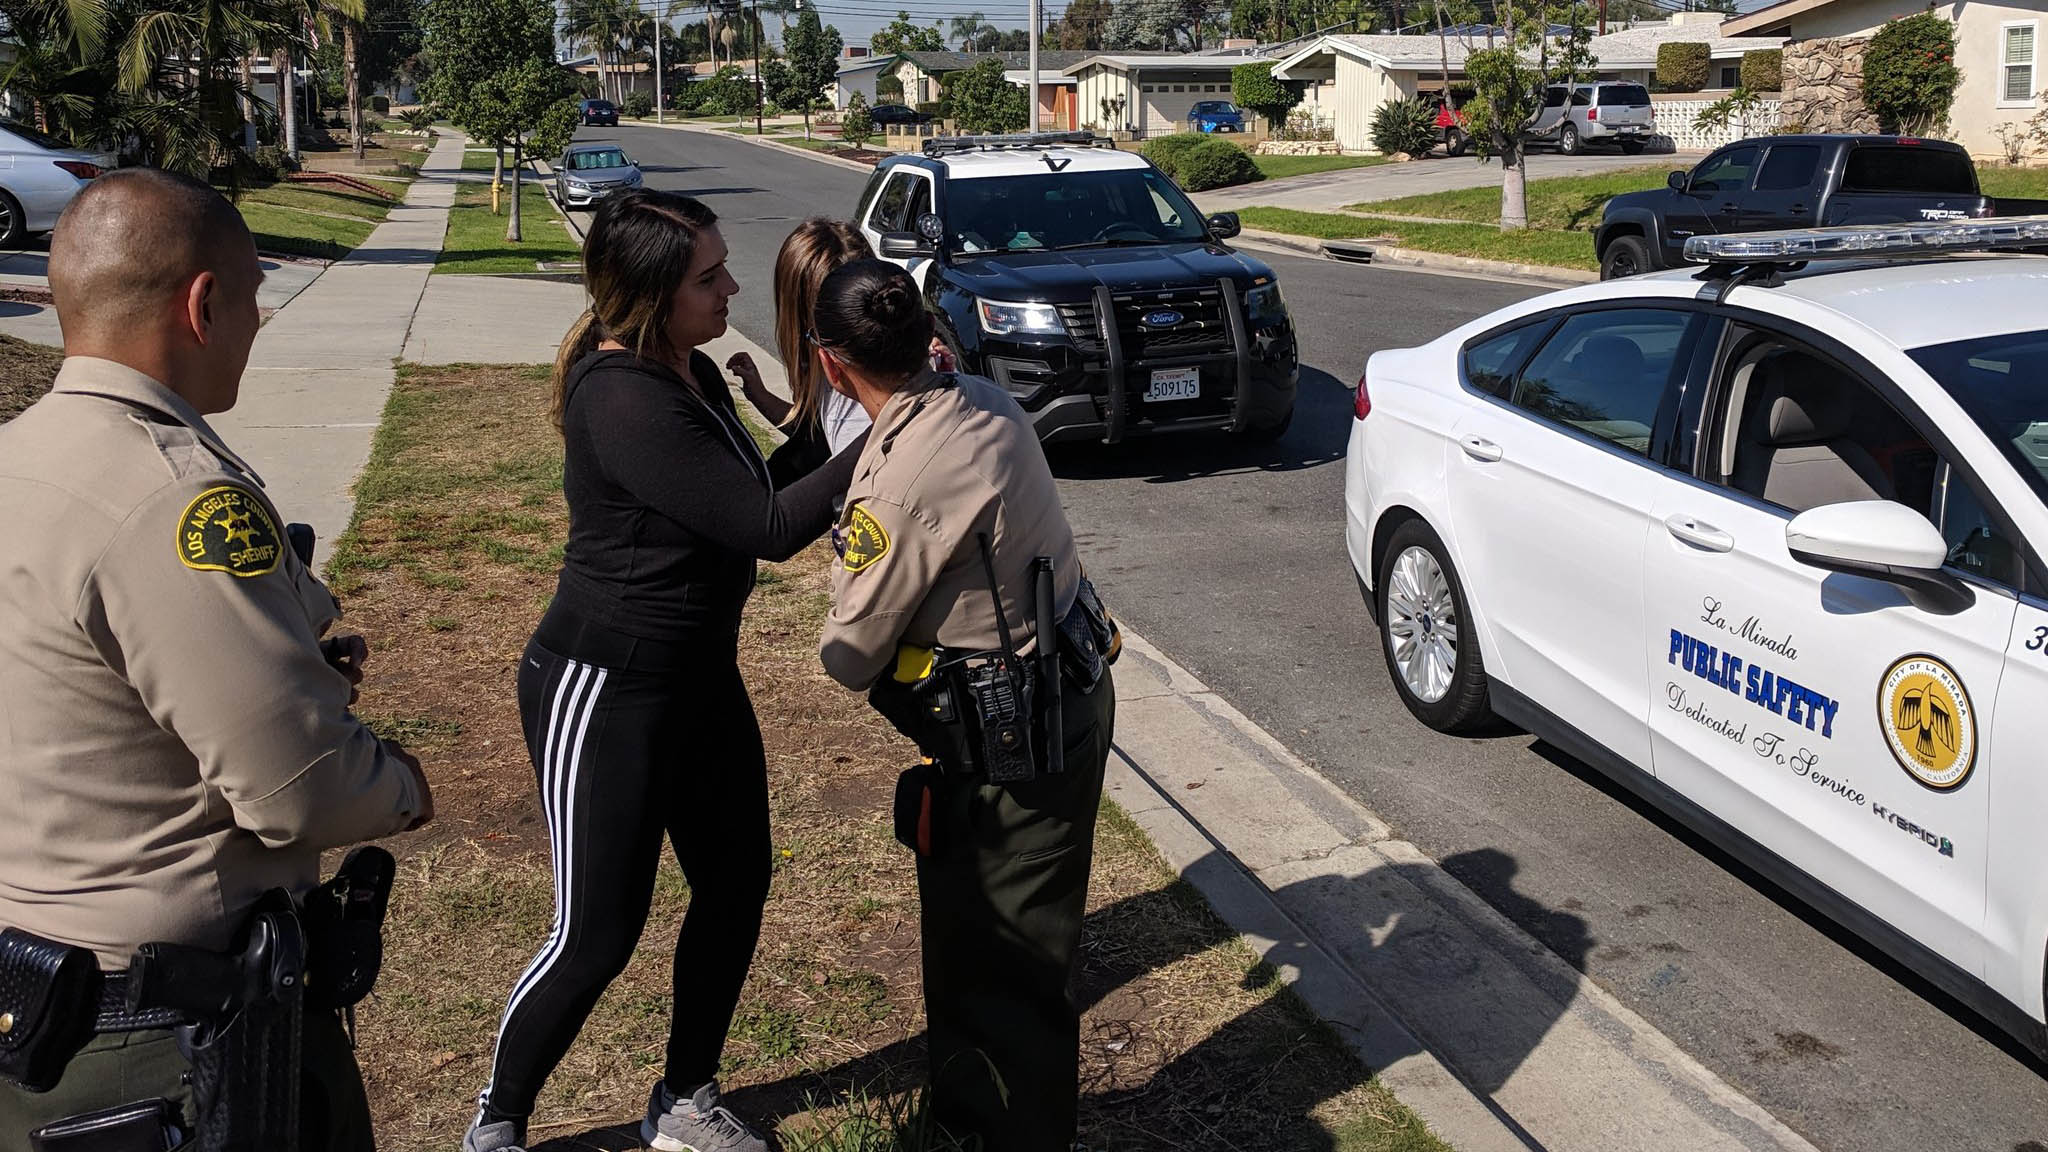 A mother was reunited with a toddler after the girl was found wandering alone in La Mirada Friday, Oct. 26, 2018.